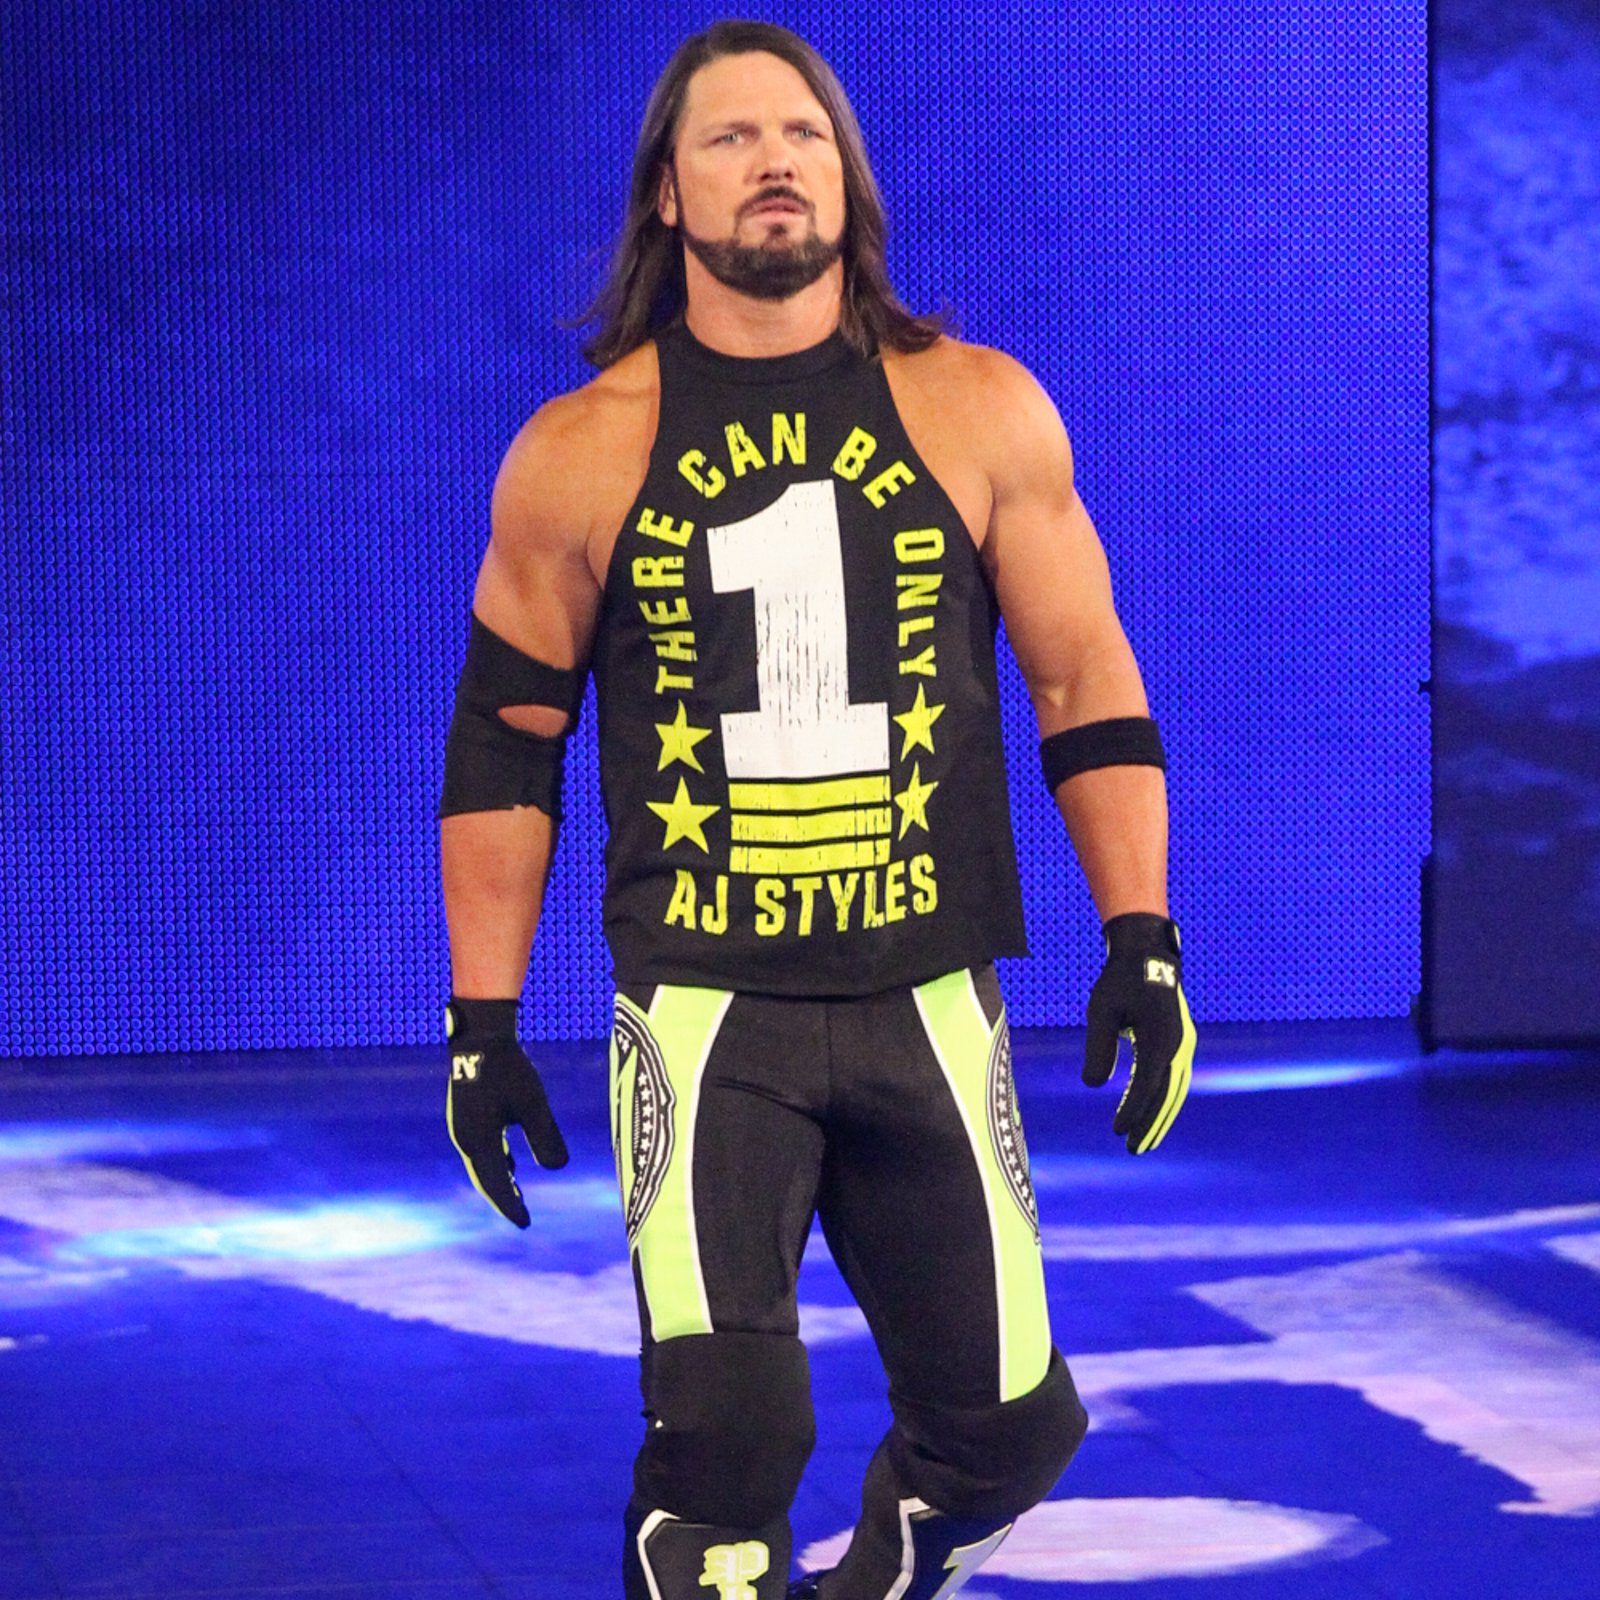 Suddenly, AJ Styles stalks to the ring!